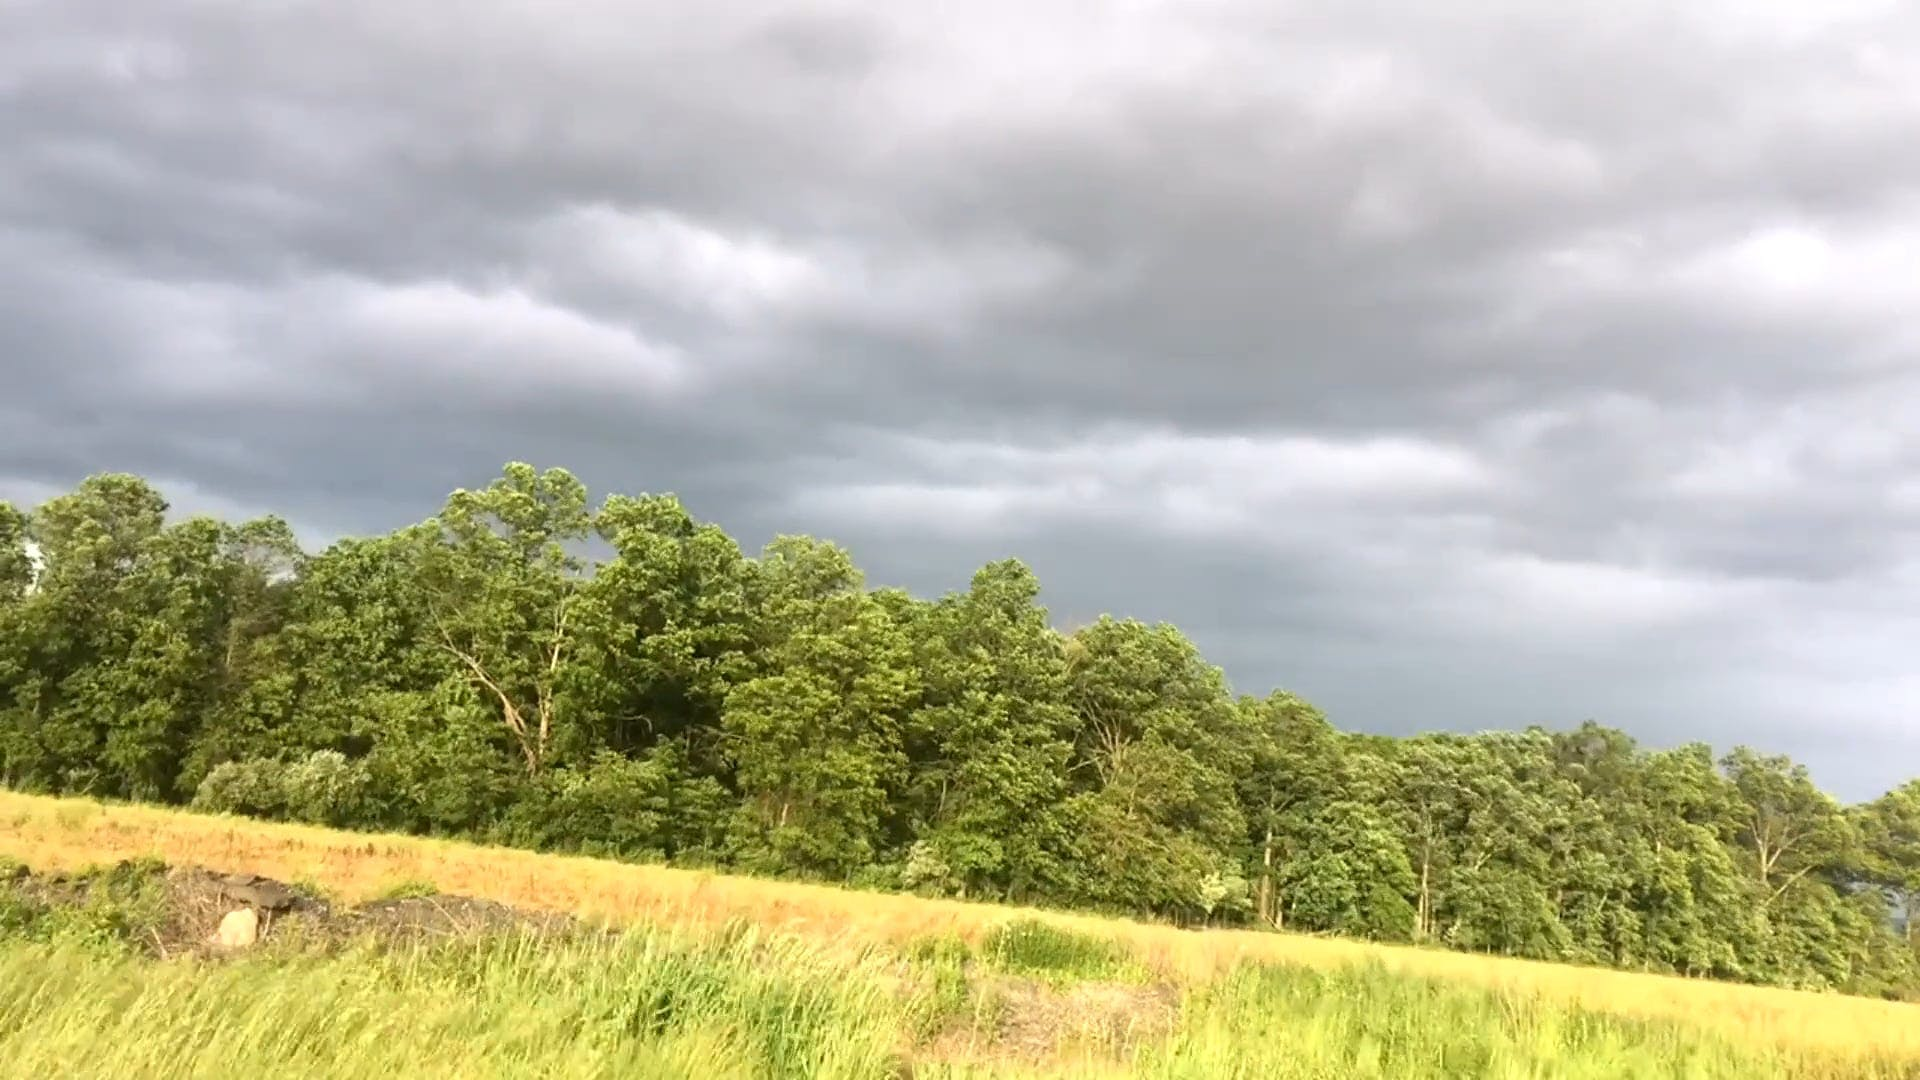 Time Lapse Video Of Bad Weather